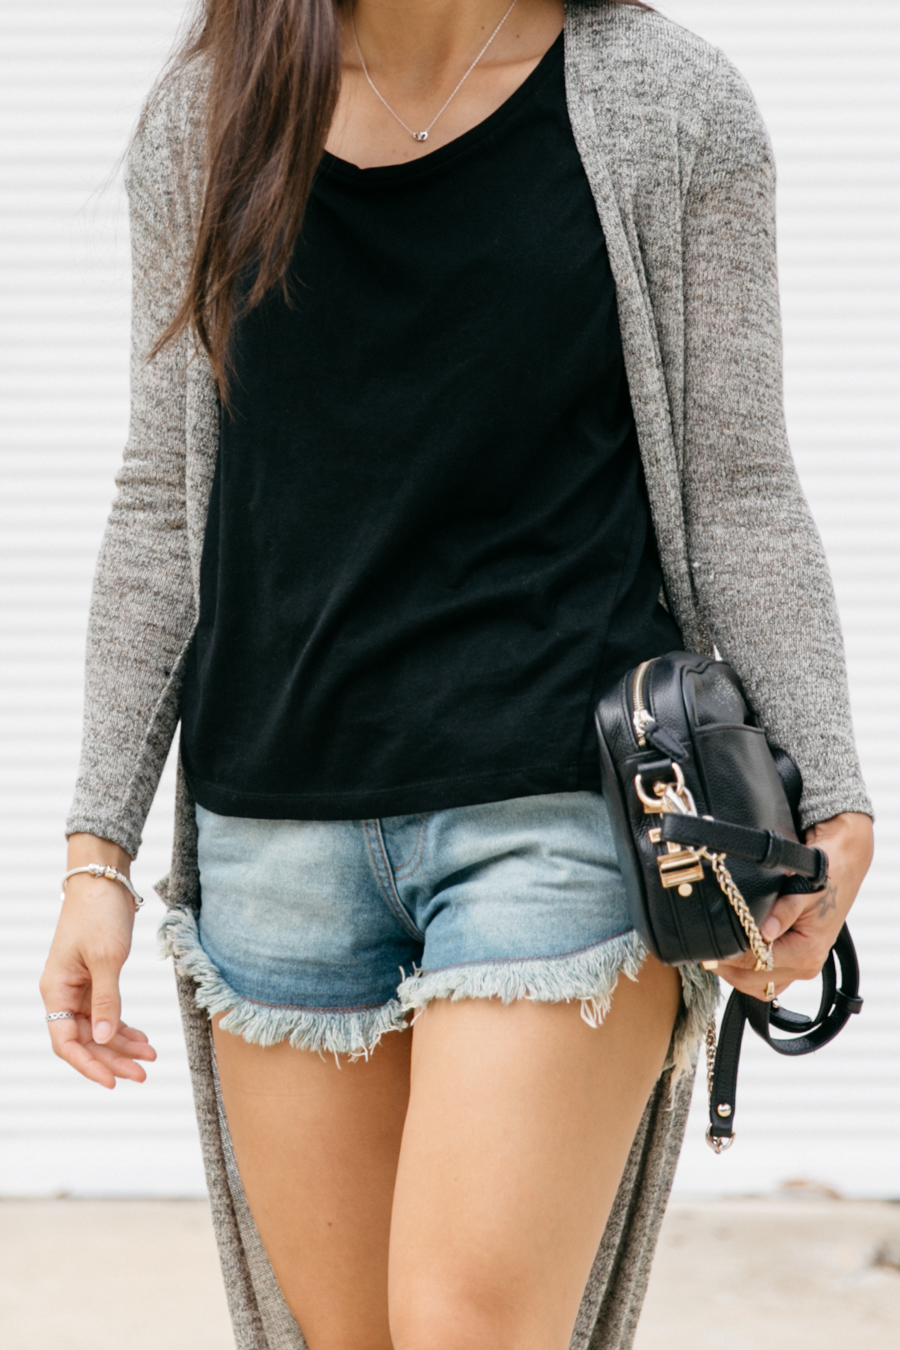 Cardigan with denim shorts. Australian fashion blogger.